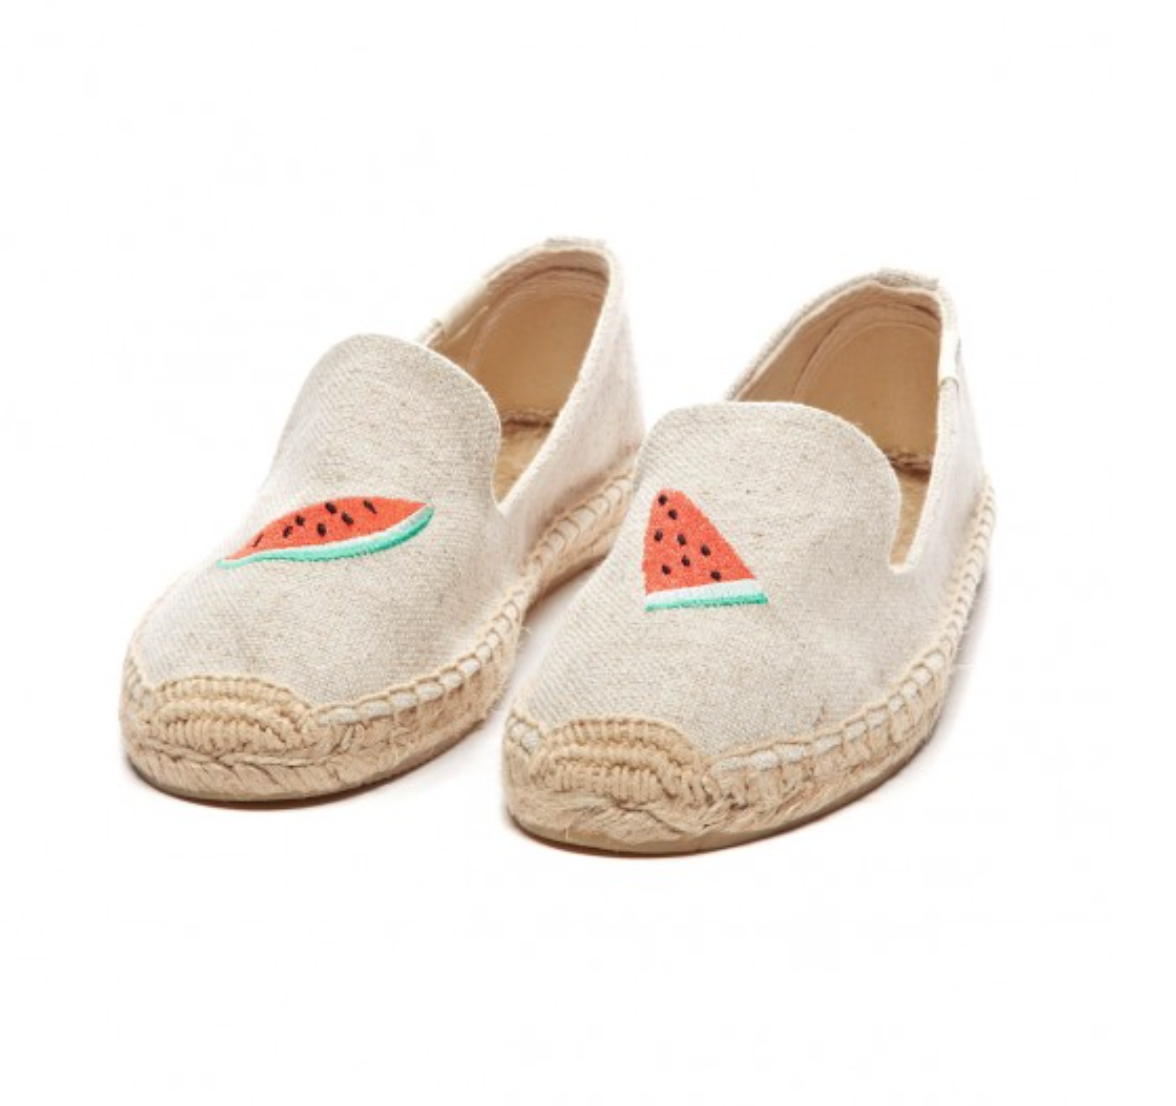 Soludos Watermelon Embroidered Smoking Slipper